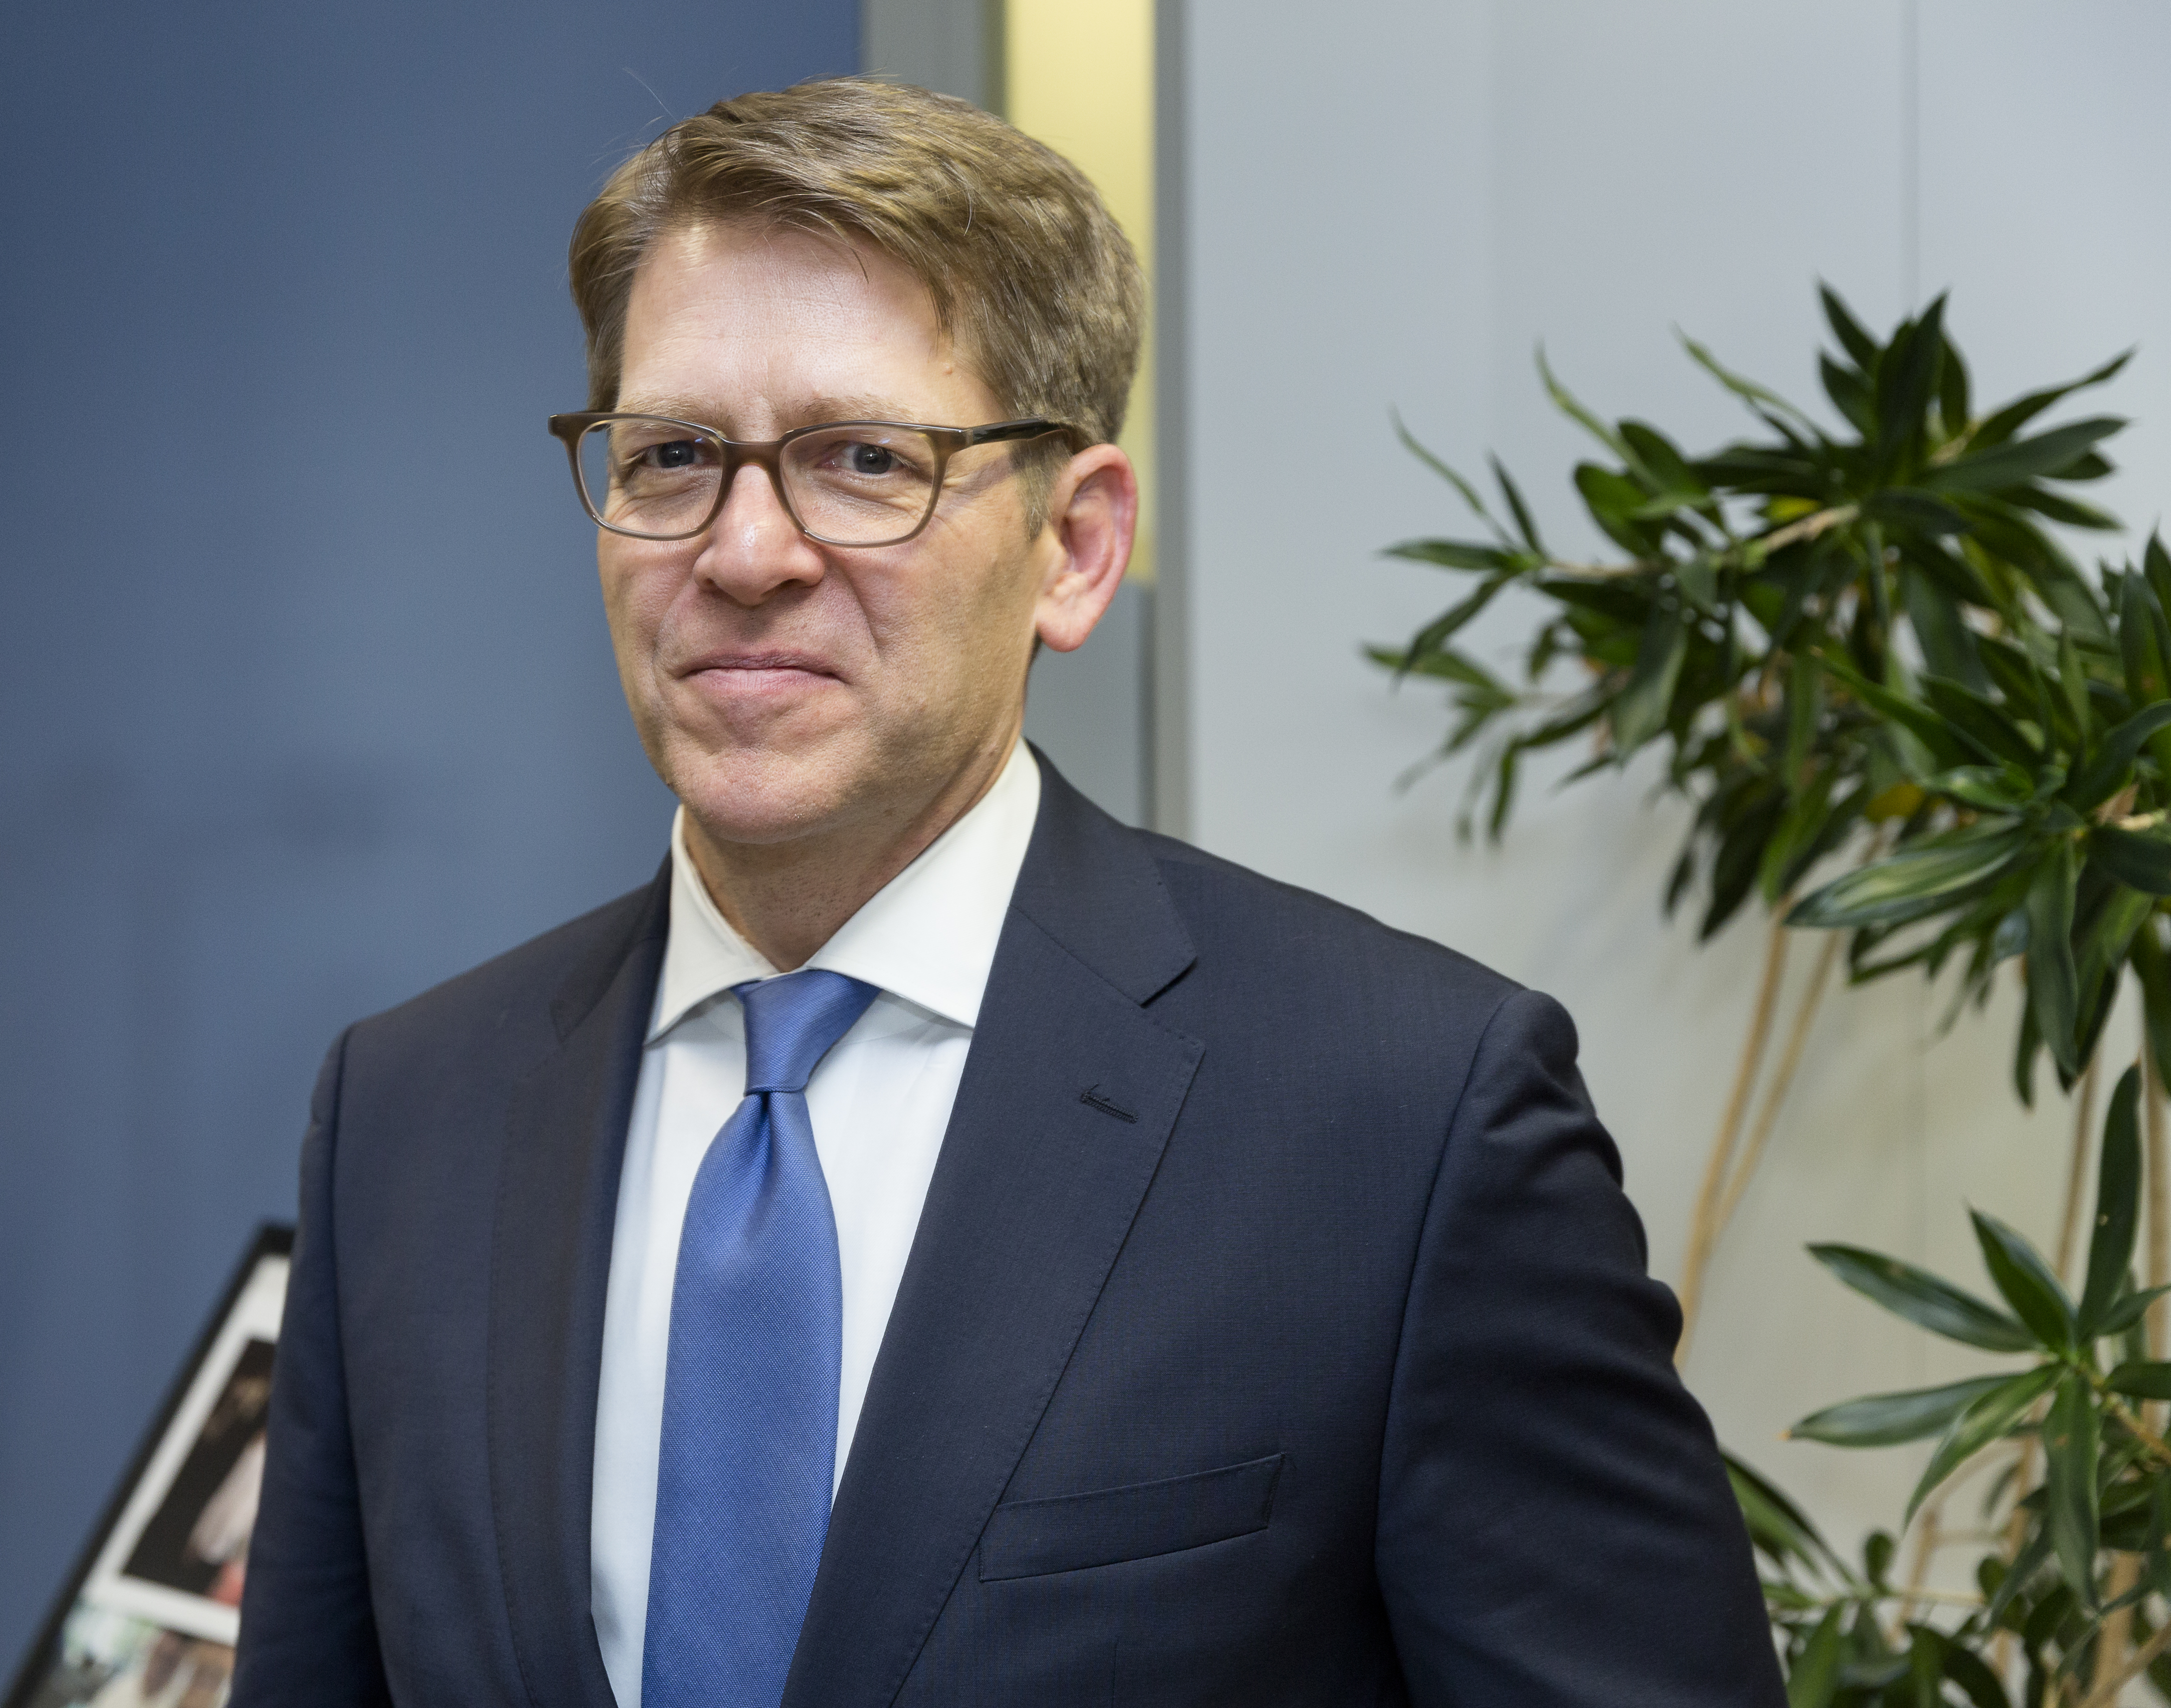 Amazon's Jay Carney poses for a photo.